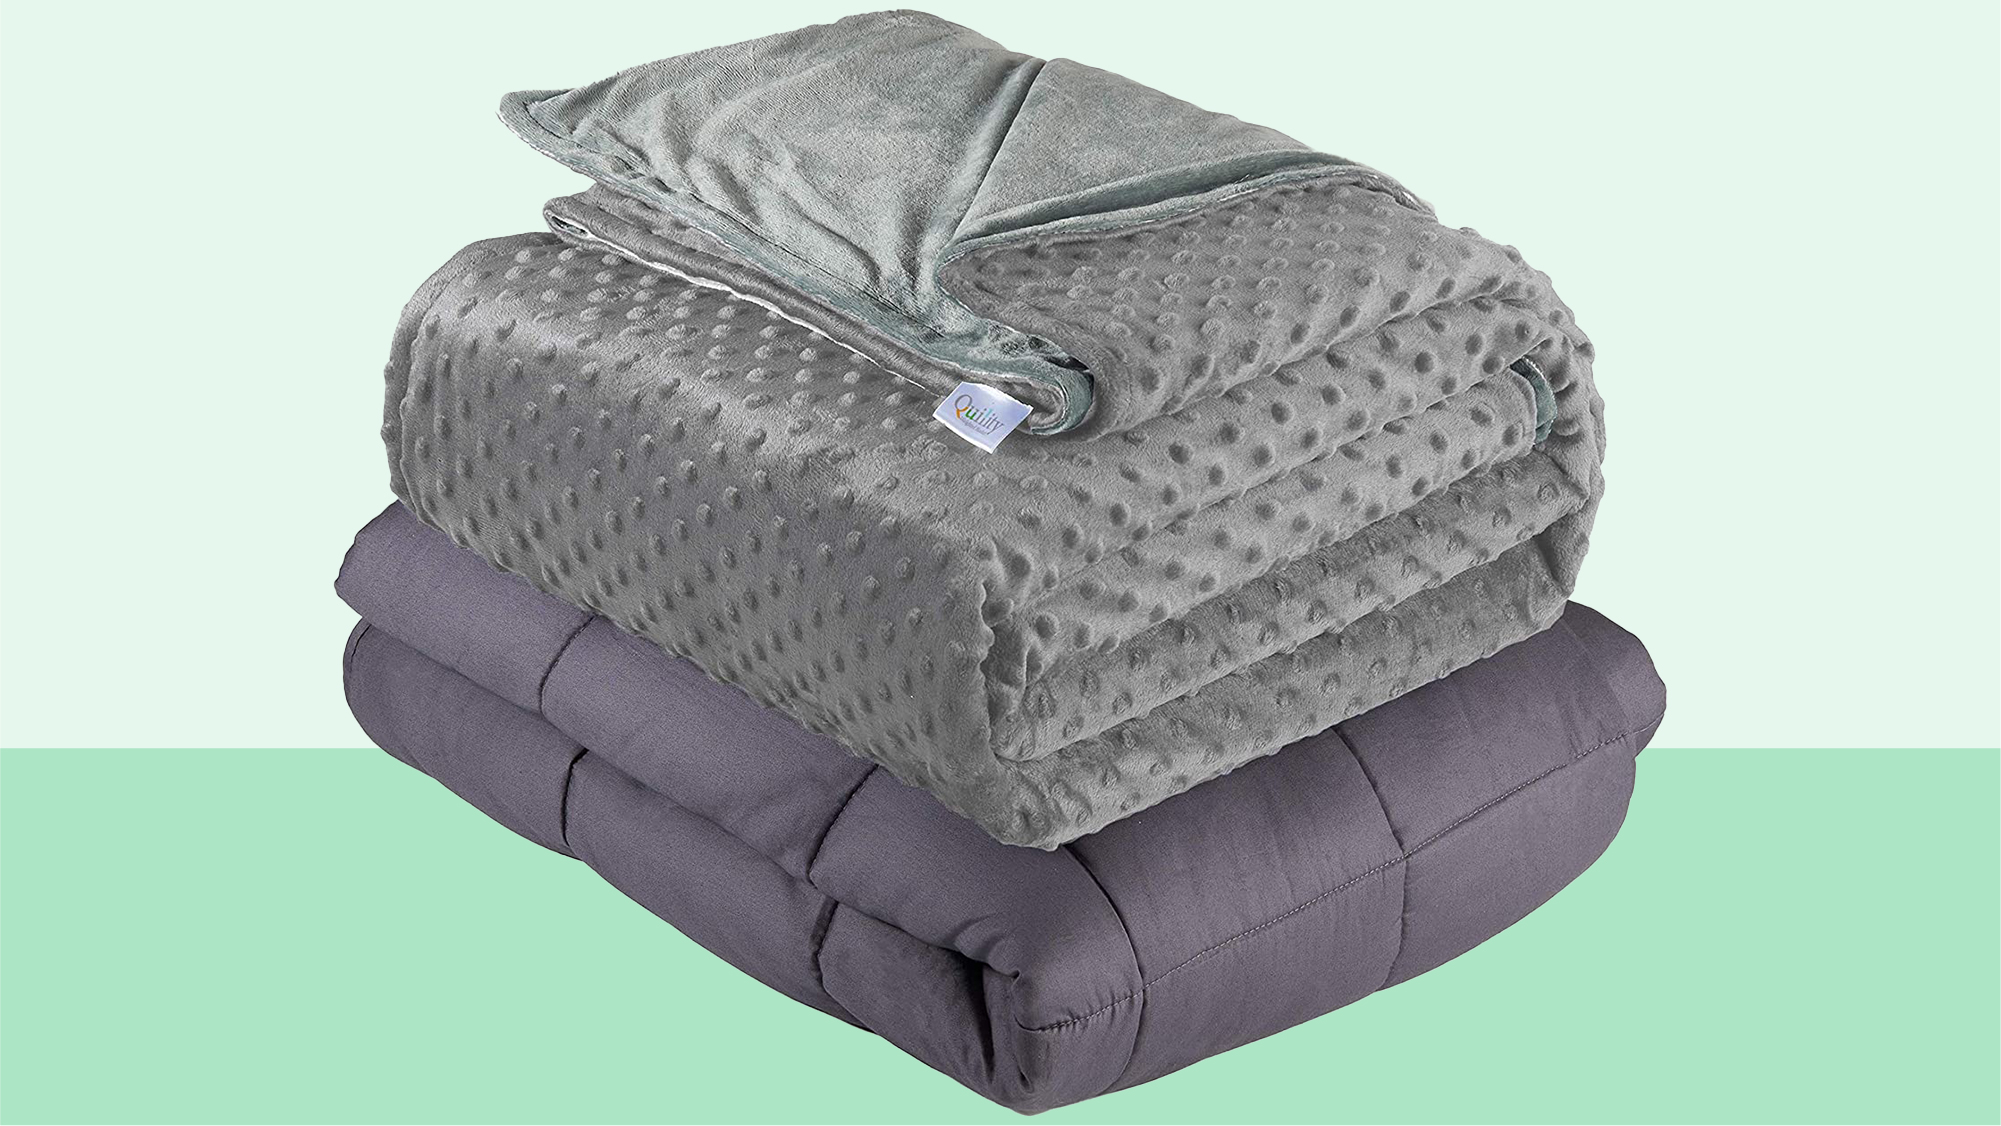 Quility Weighted Blanket for Adults - Queen Size